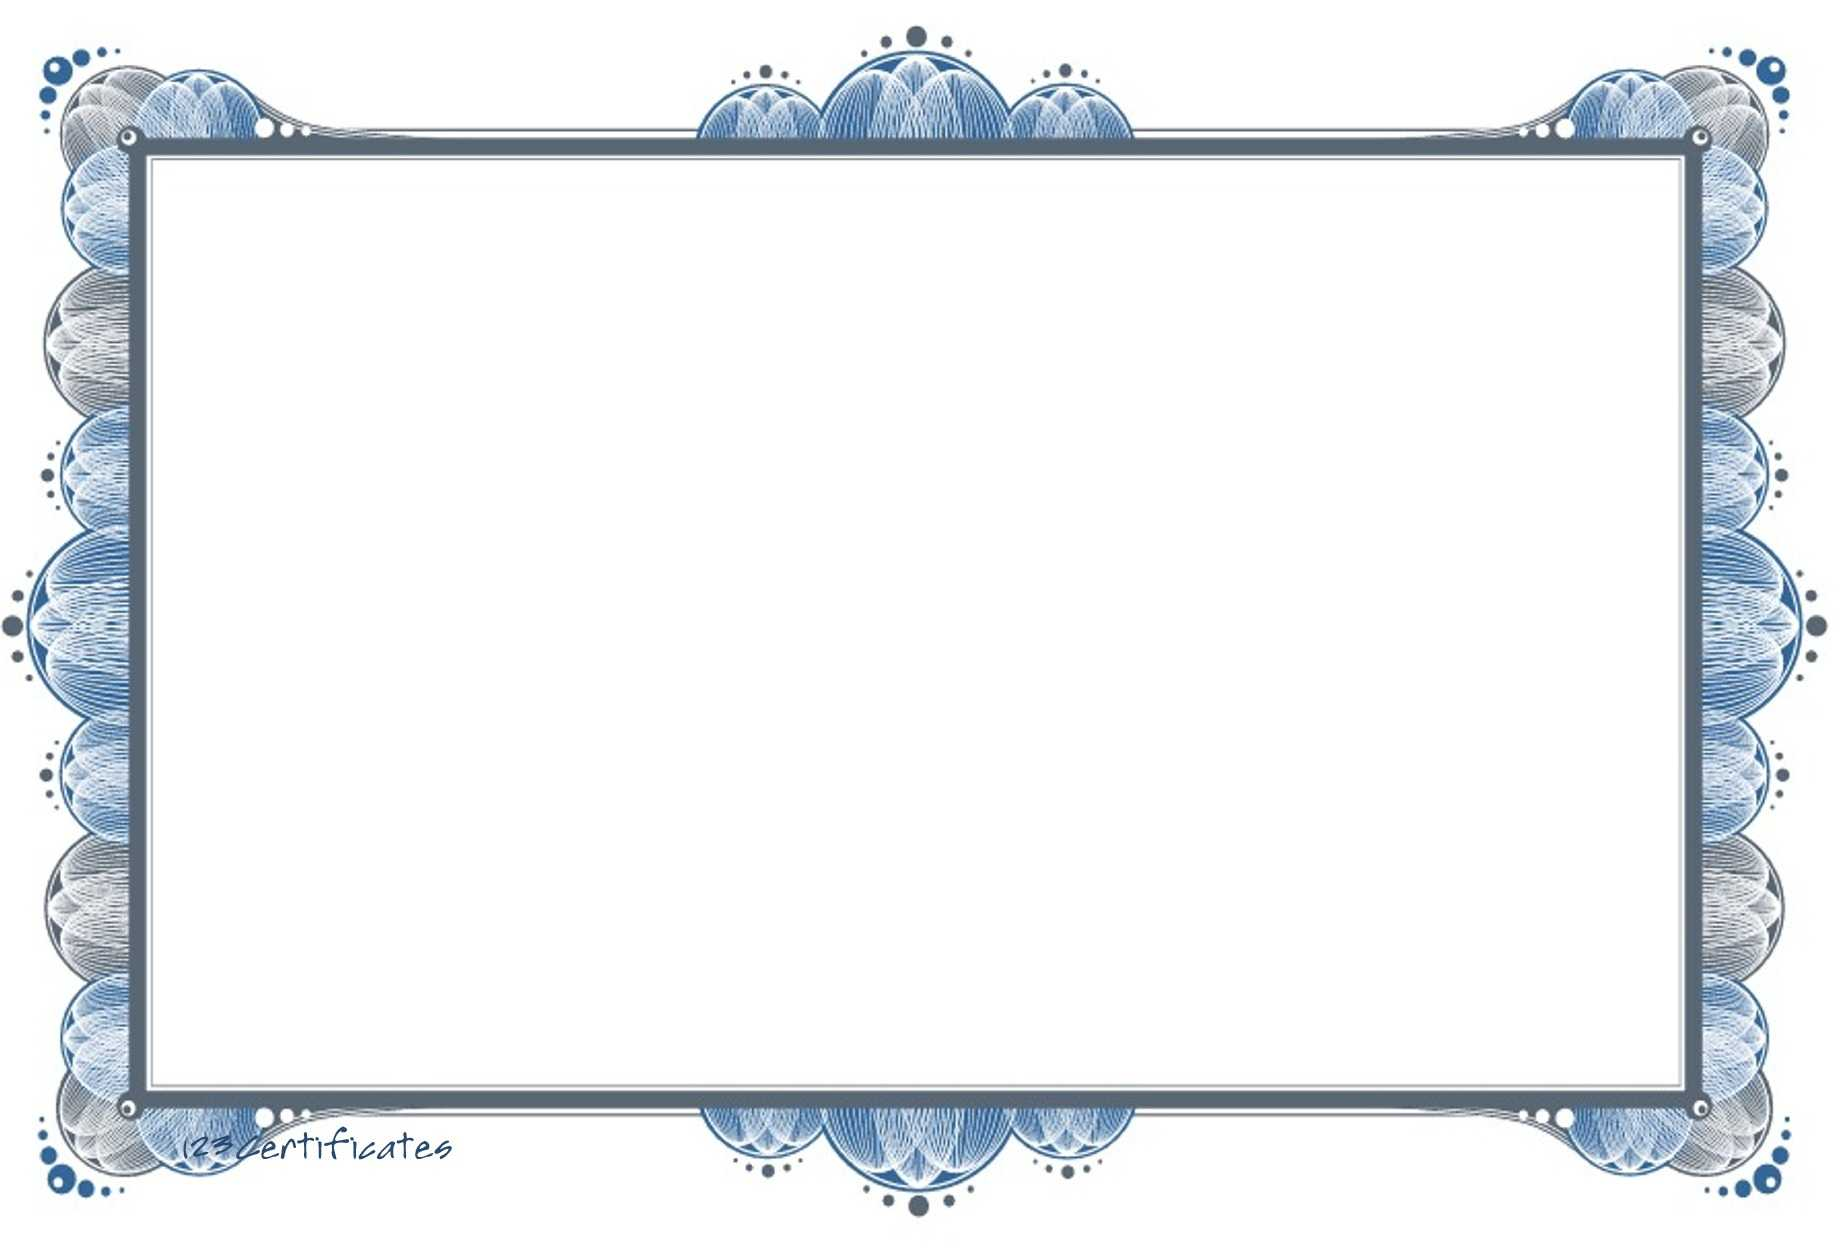 Free Certificate Borders, Download Free Clip Art, Free Clip Regarding Certificate Border Design Templates